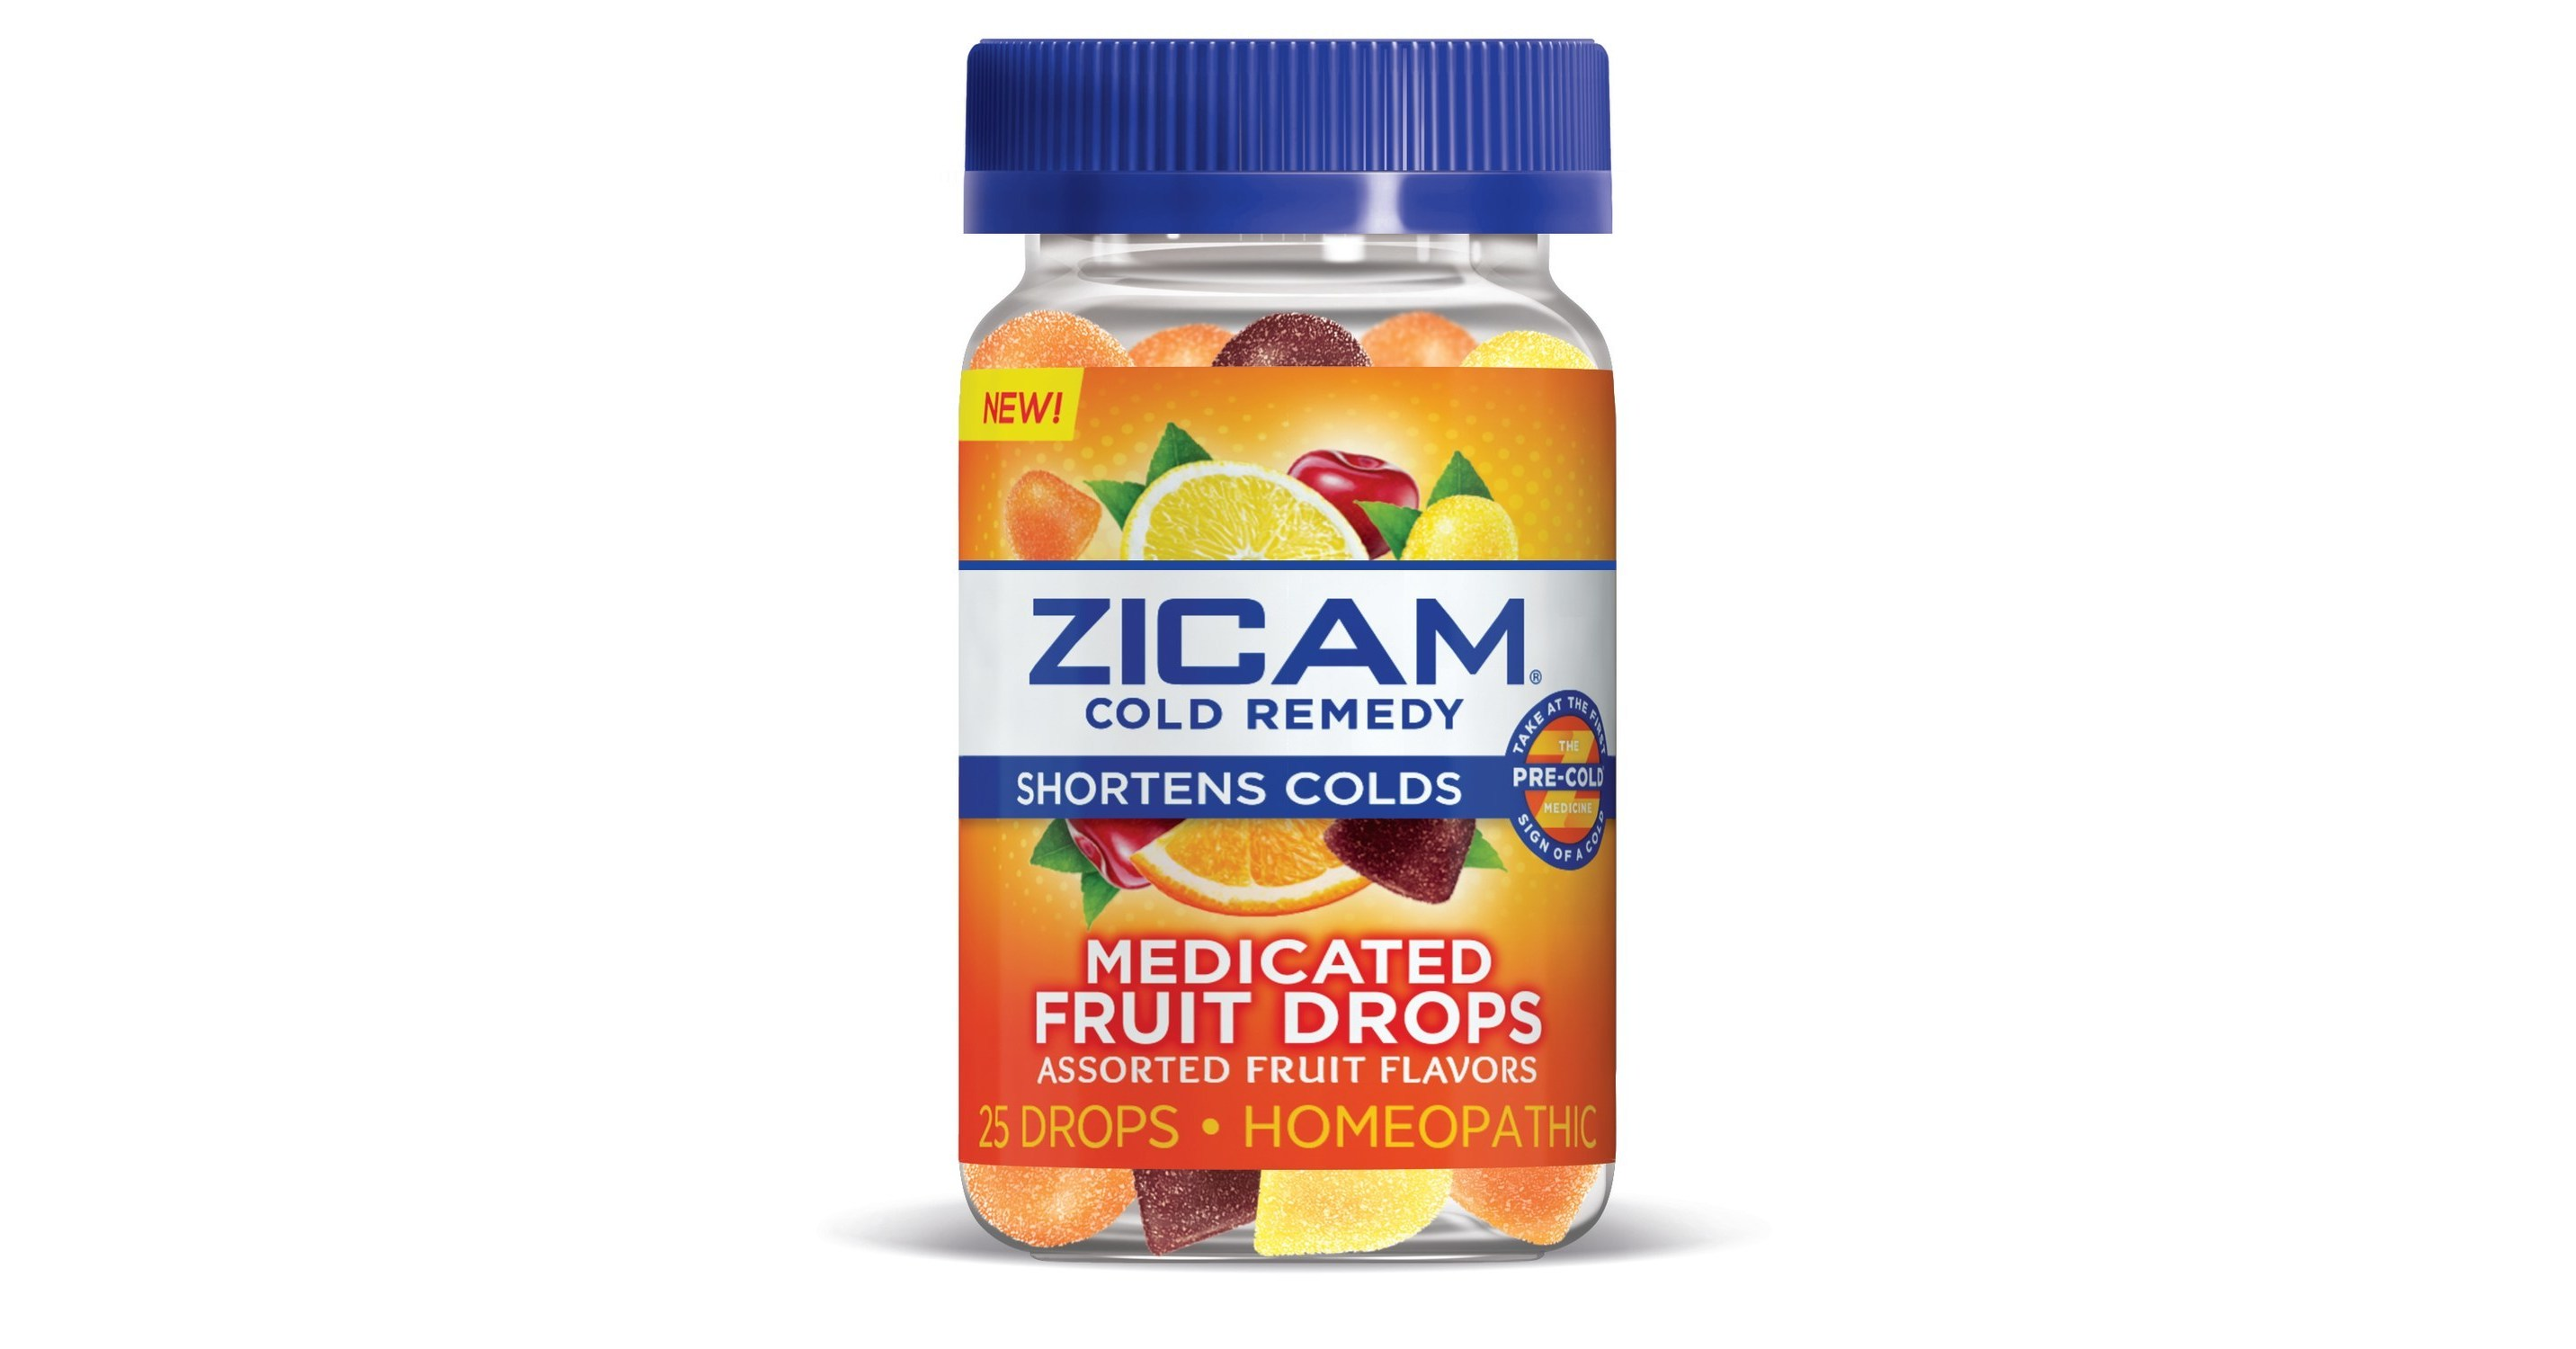 Zicam 174 Adds Medicated Fruit Drops To Impressive Cold